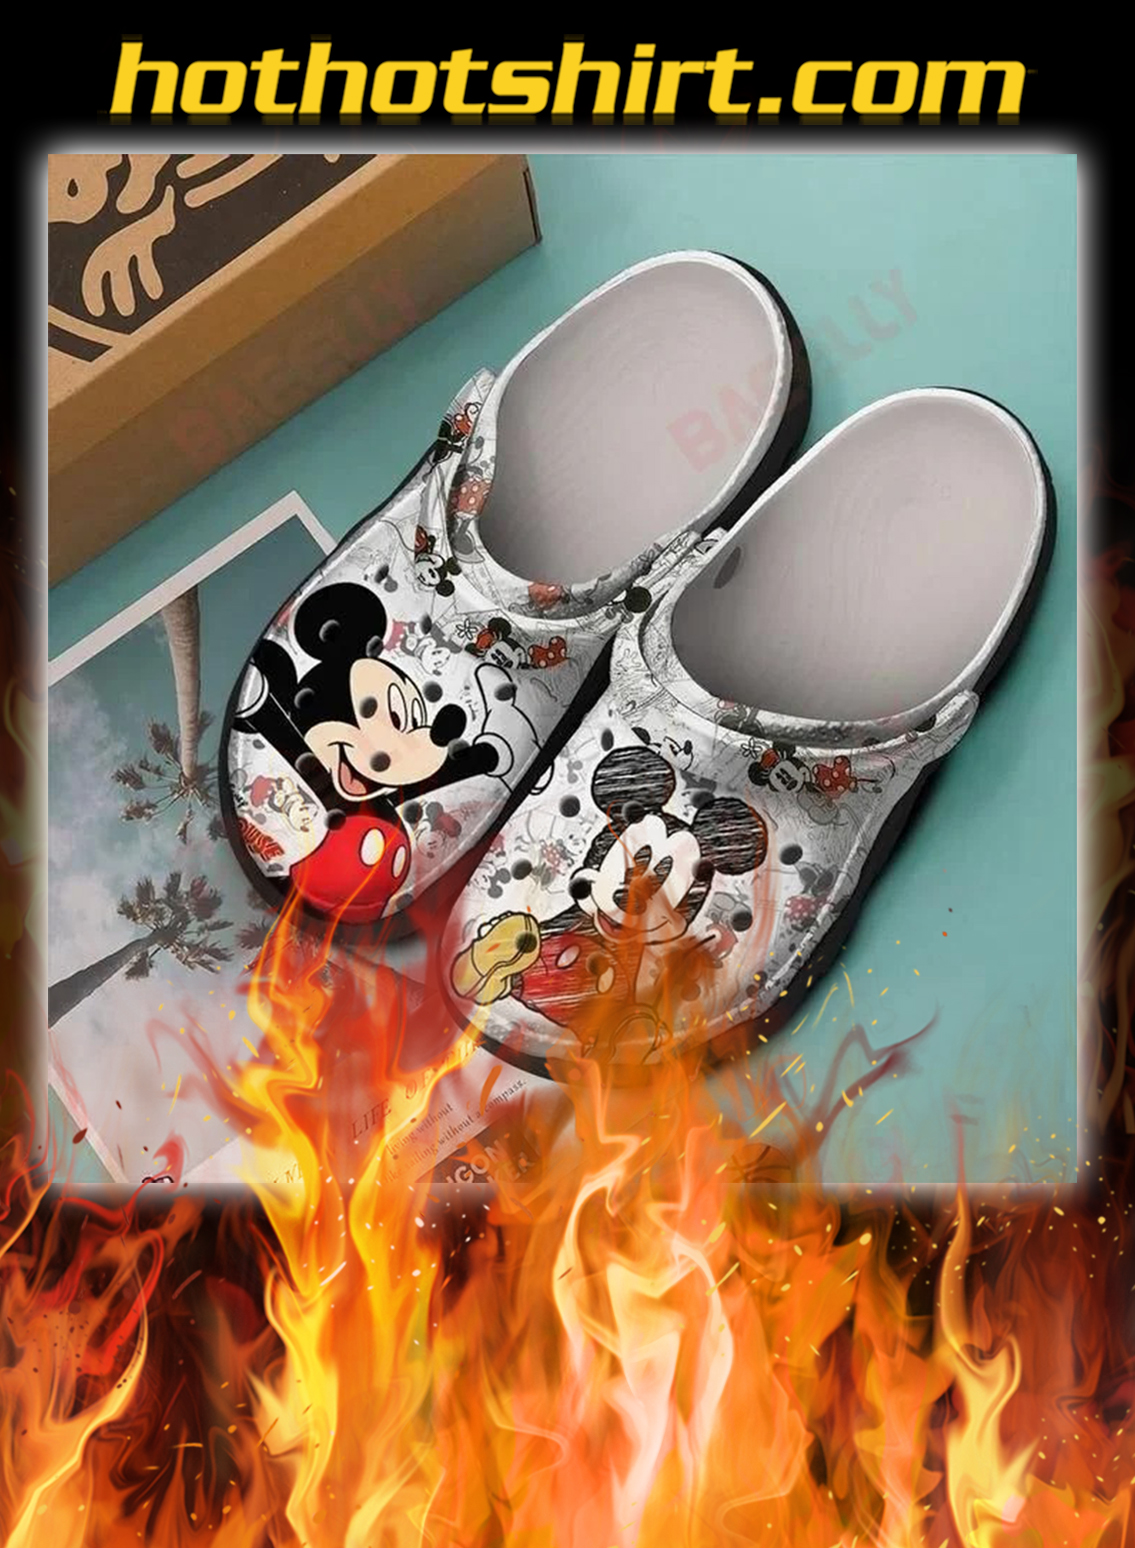 Mickey crocband crocs shoes - pic 1